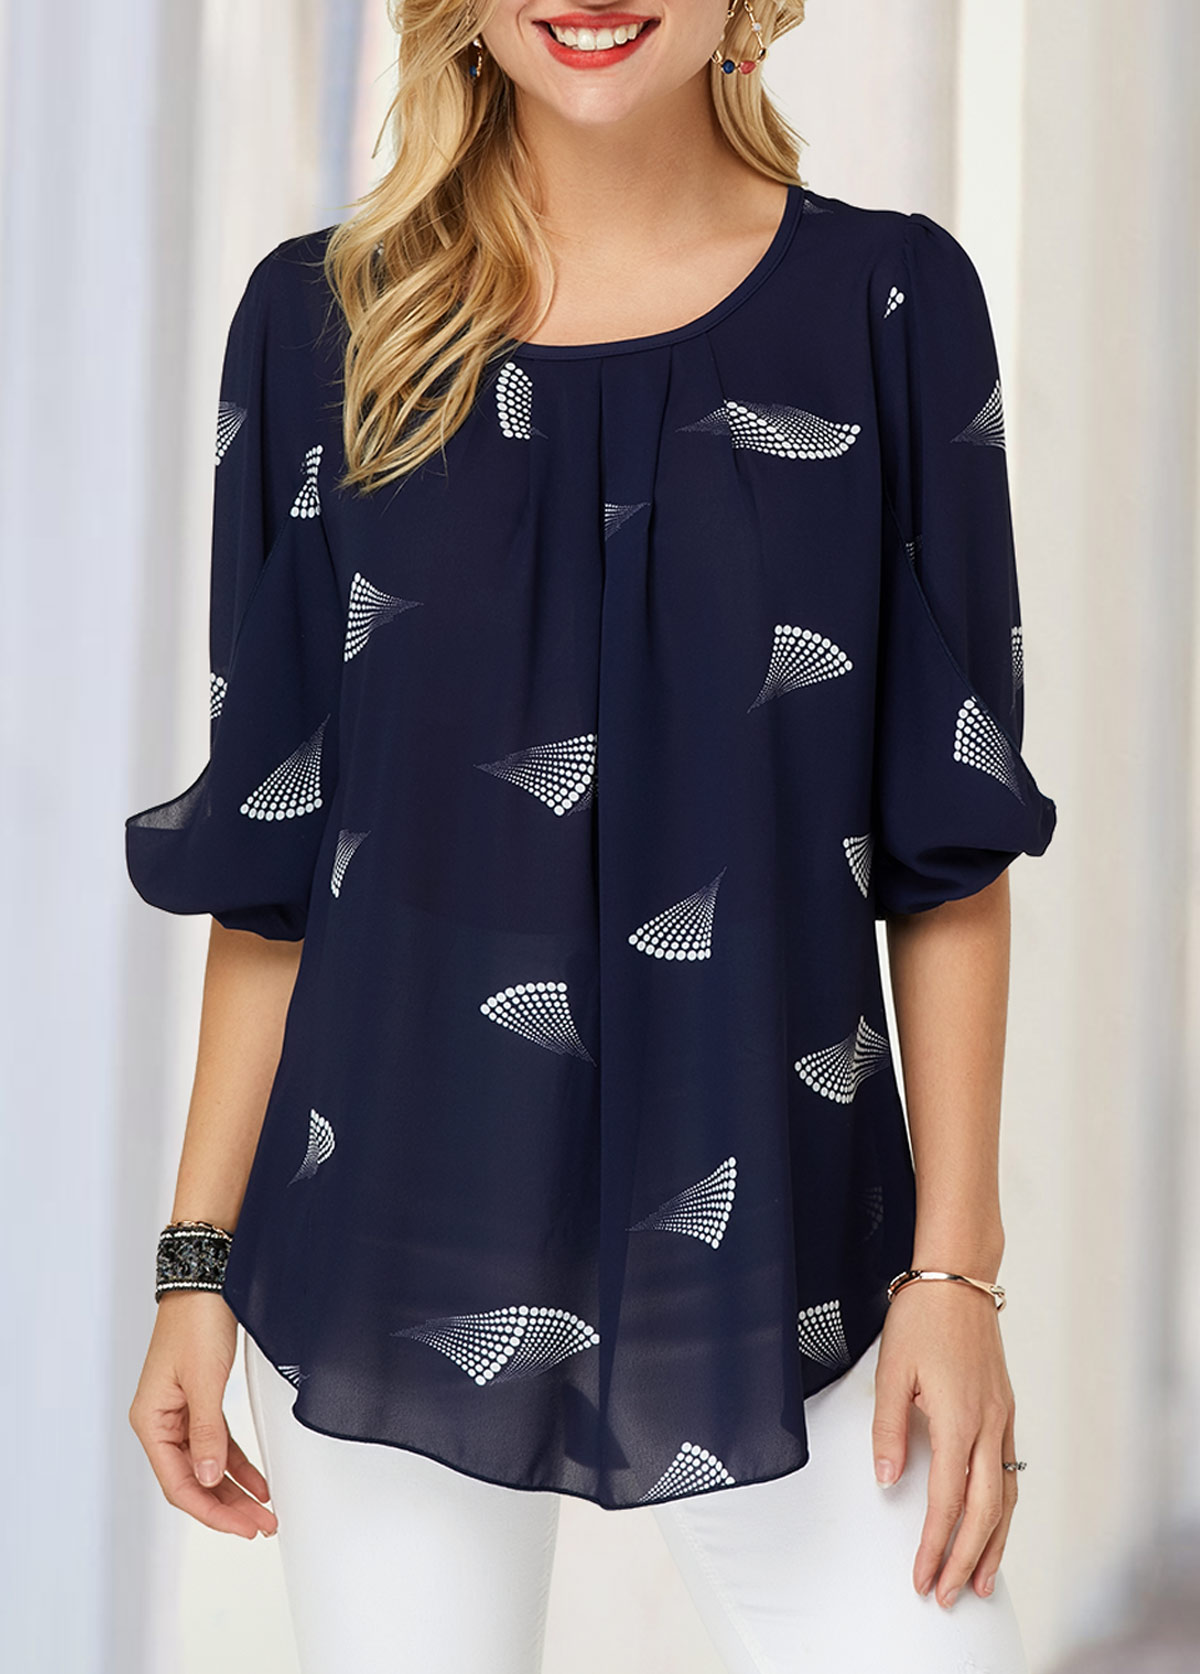 ROTITA Blouson Sleeve Printed Navy Blue Blouse